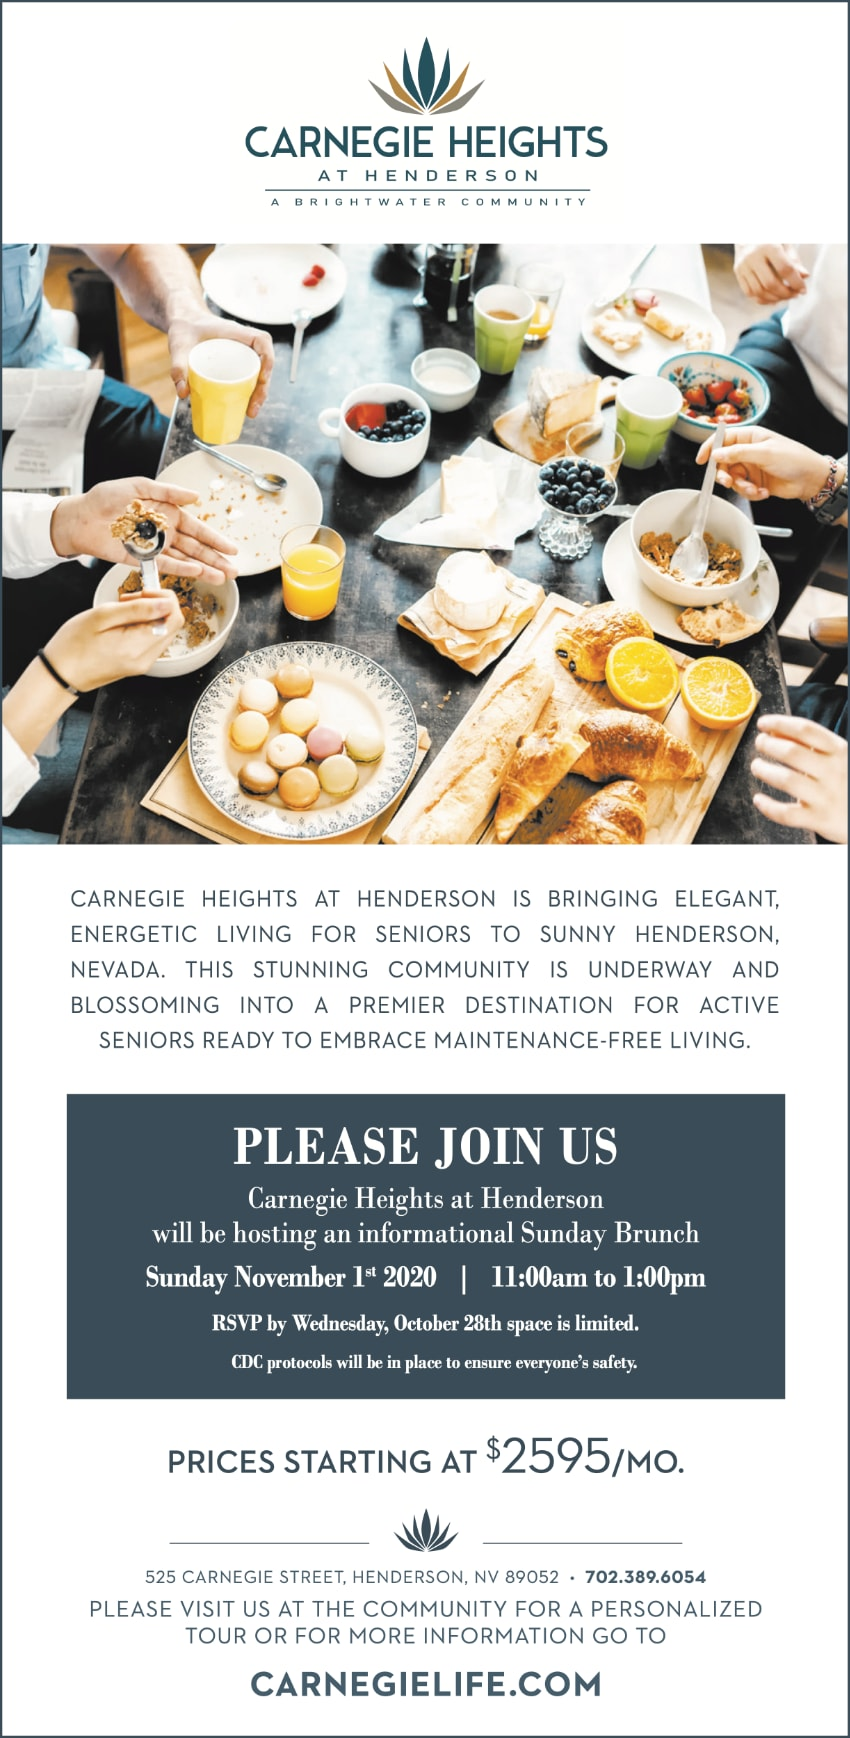 Informational brunch flyer for Carnegie Heights at Henderson